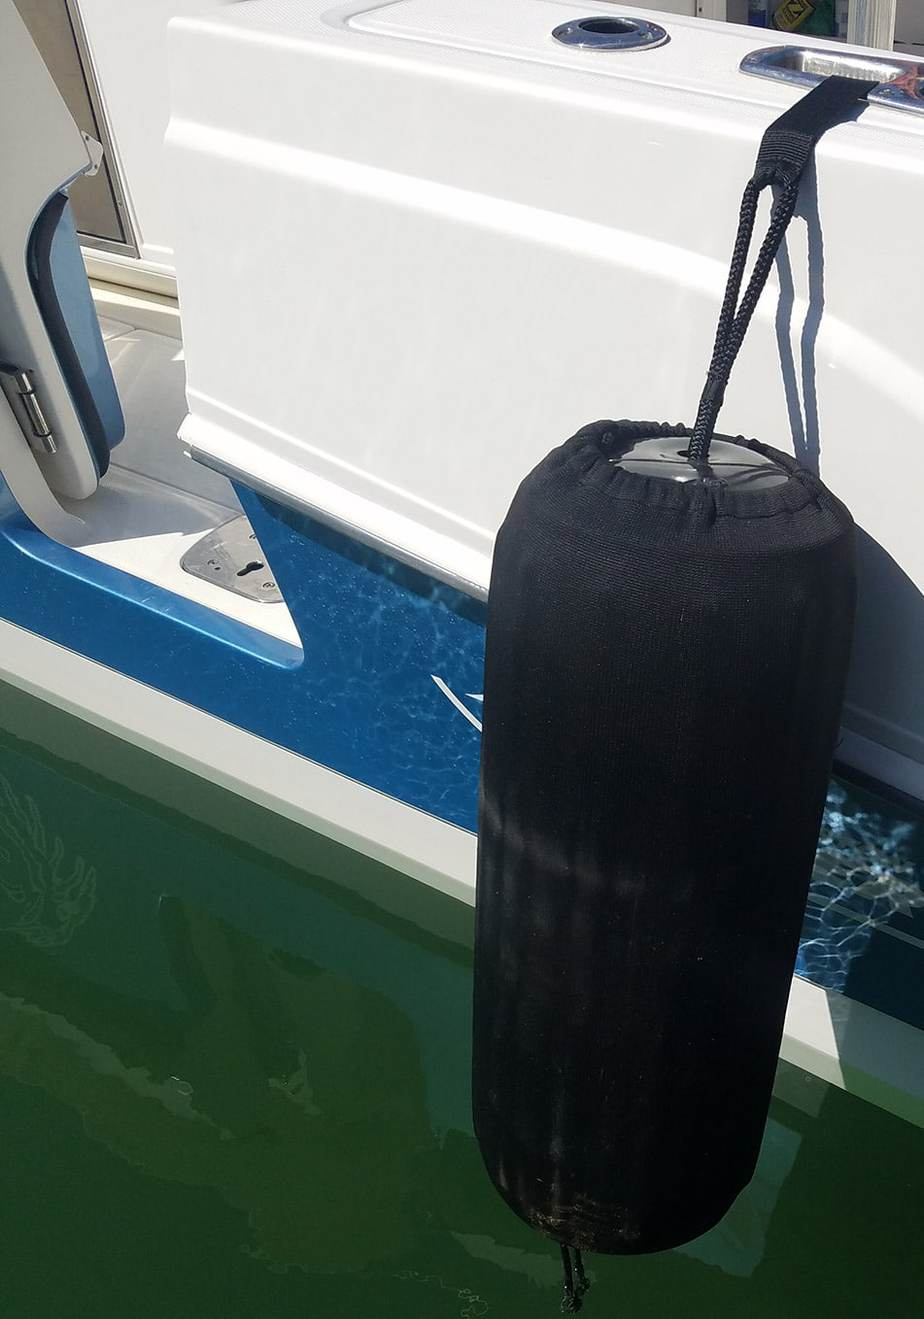 Can You Paint Boat Fenders? How To Clean Boat Fenders!